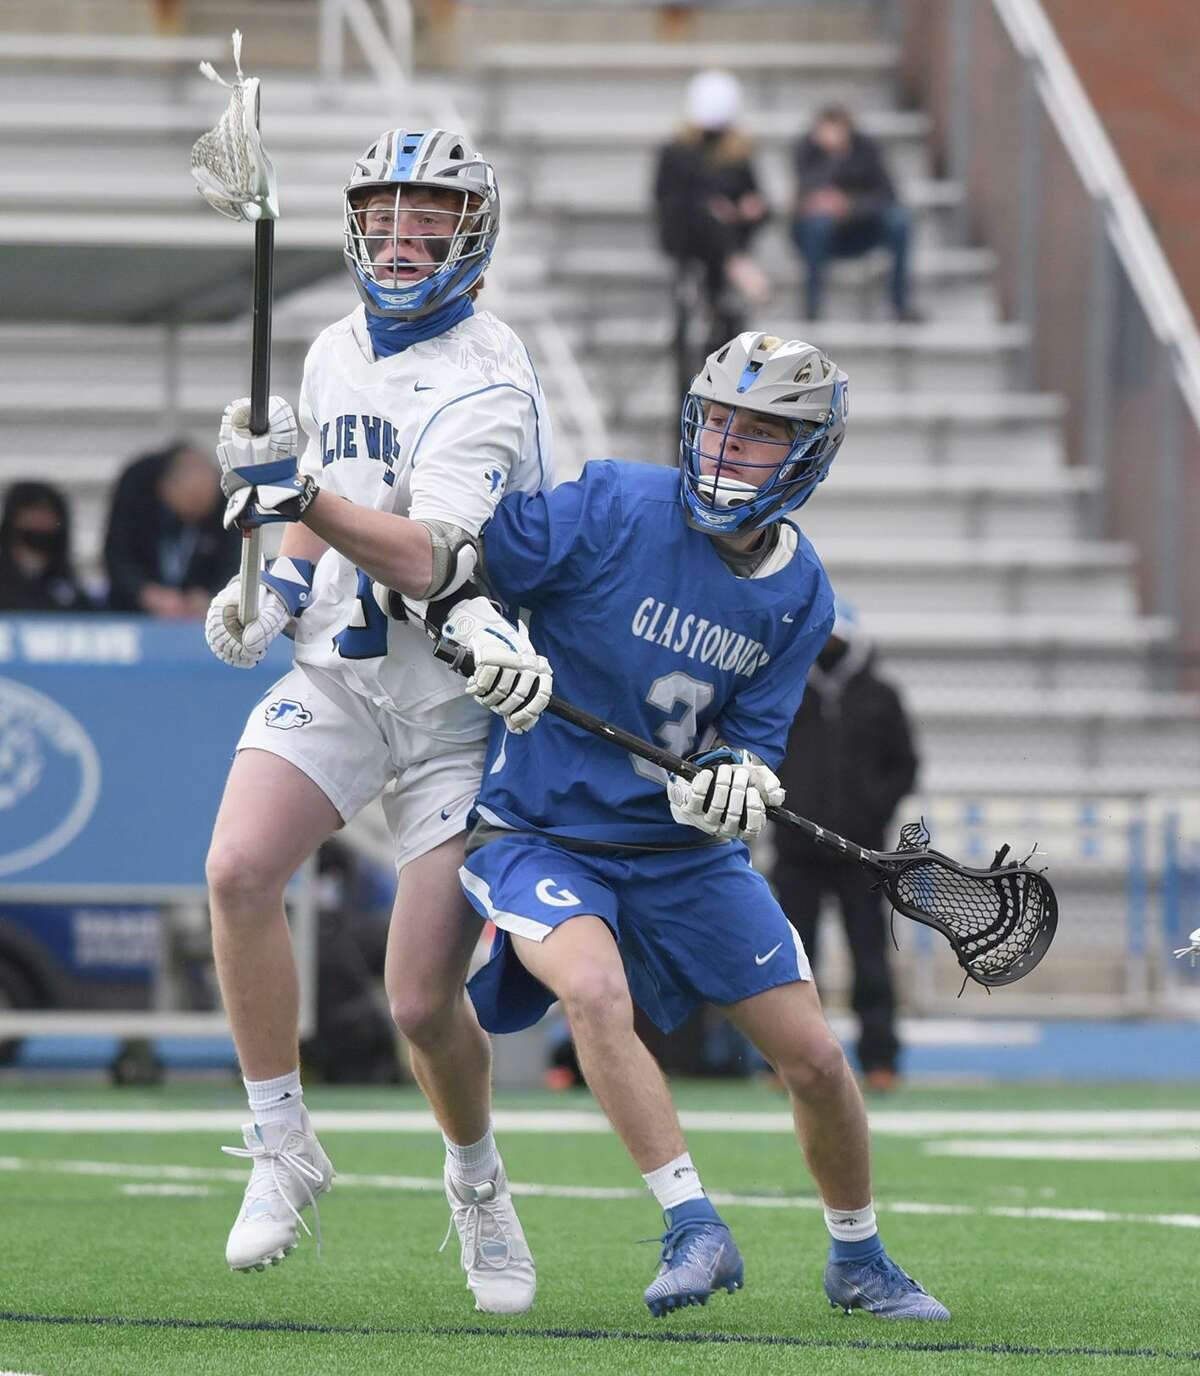 Darien's Mac McGahren (23) and Glastonbury's Capers Shaw (3) battle for the ball during a boys lacrosse game at Darien High School on Friday, April 16, 2021.